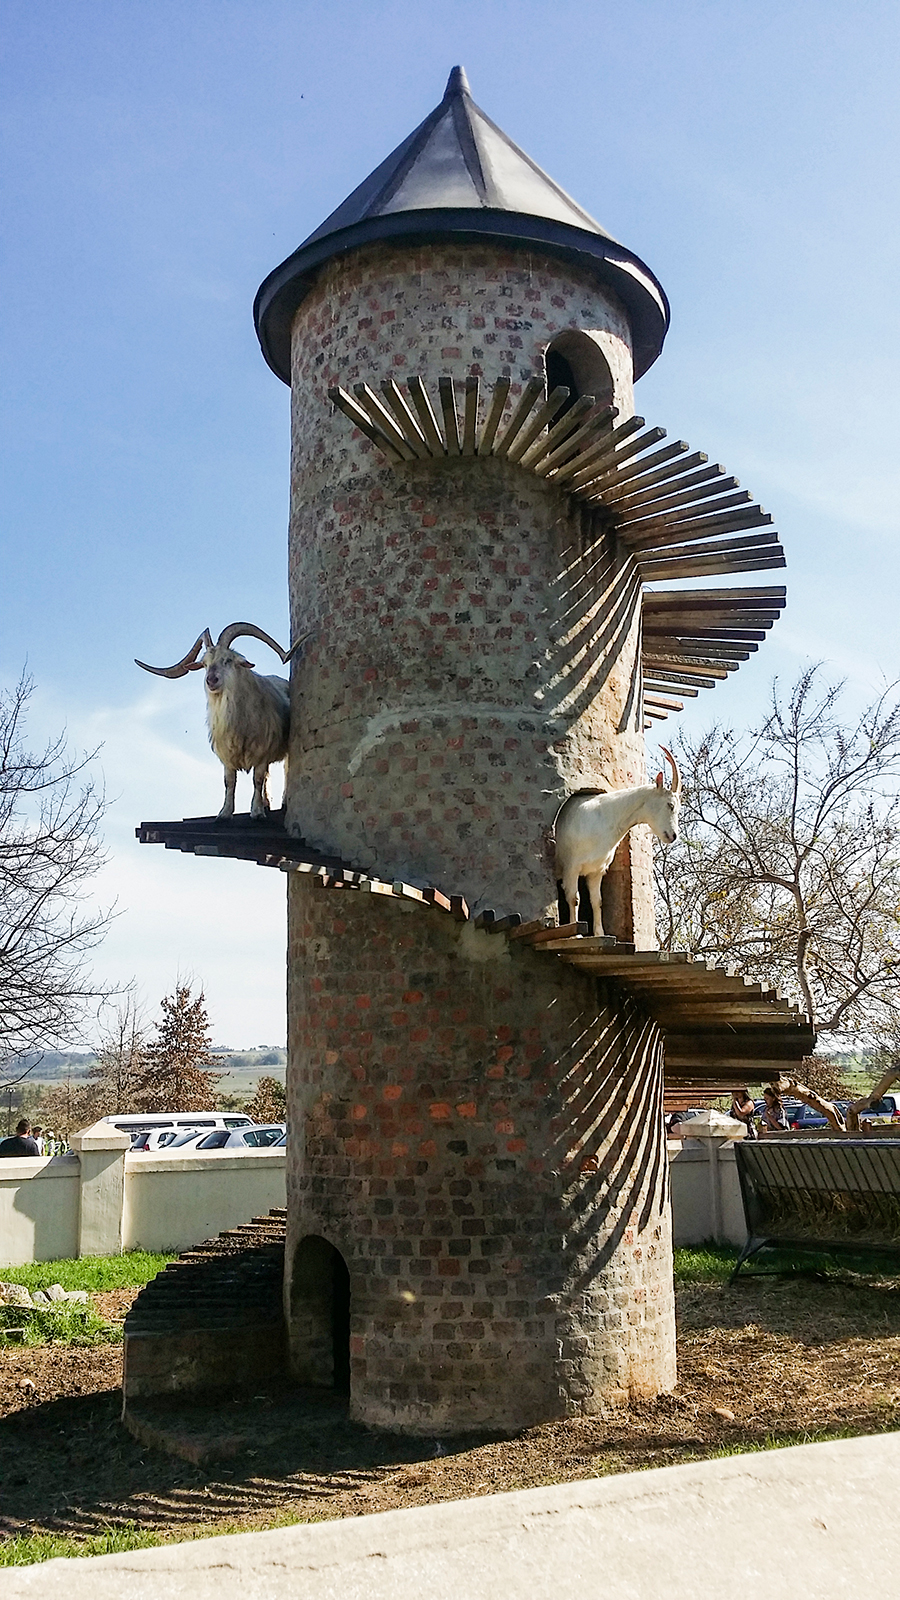 Goats emerging from the Goat Tower at the Fairview Wine and Cheese, South Africa.